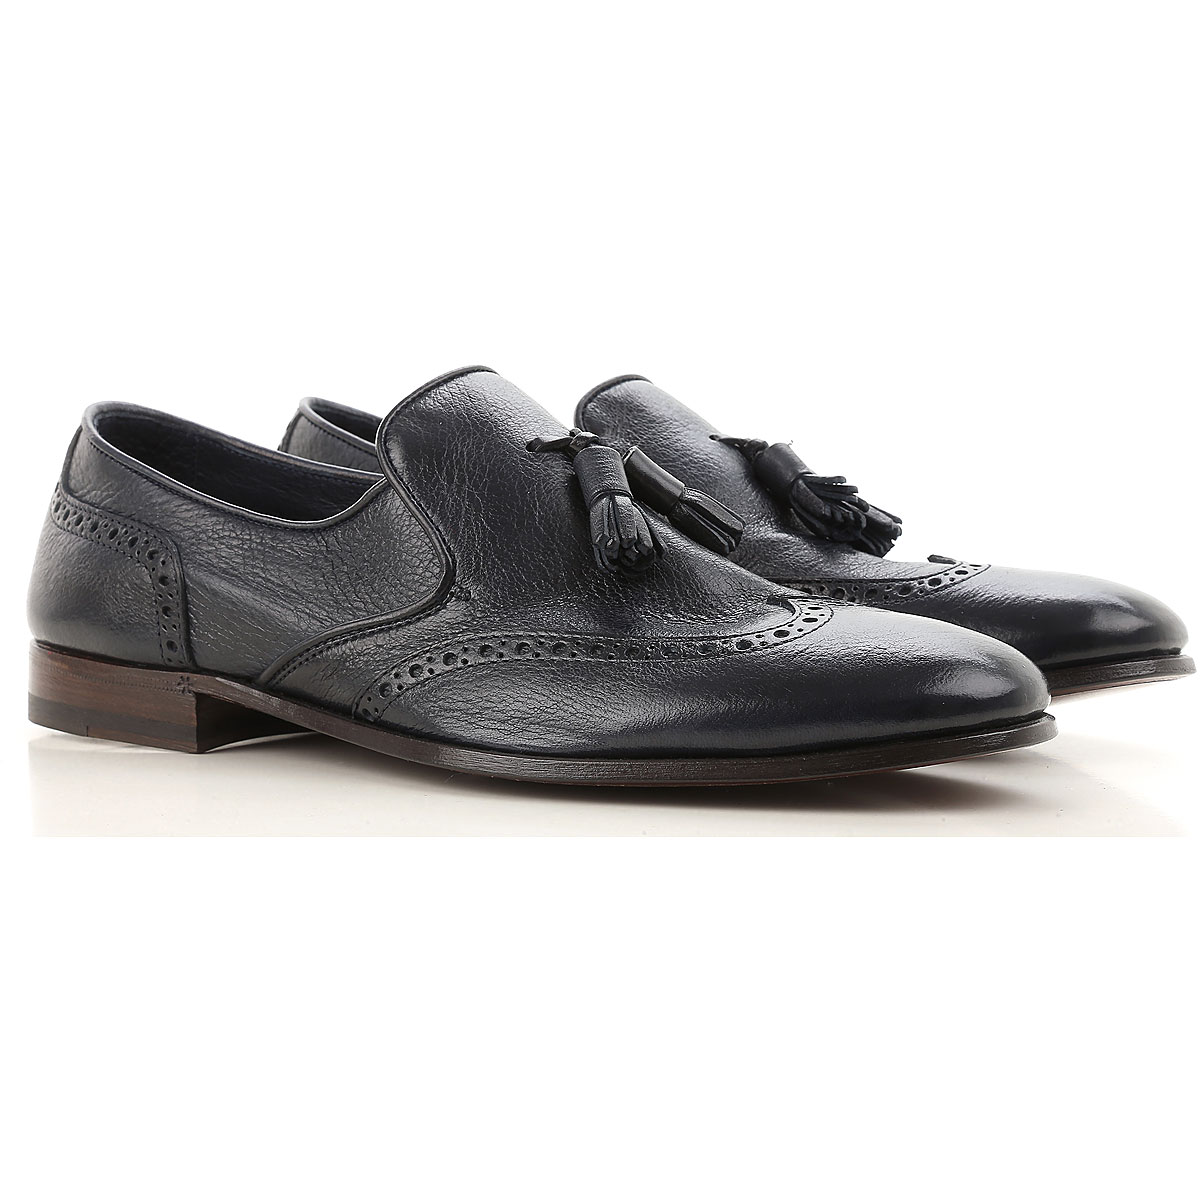 Image of Henderson Loafers for Men, Blue Ink, Leather, 2017, 10 10.5 11 11.5 6 7.5 8 8.5 9 9.5